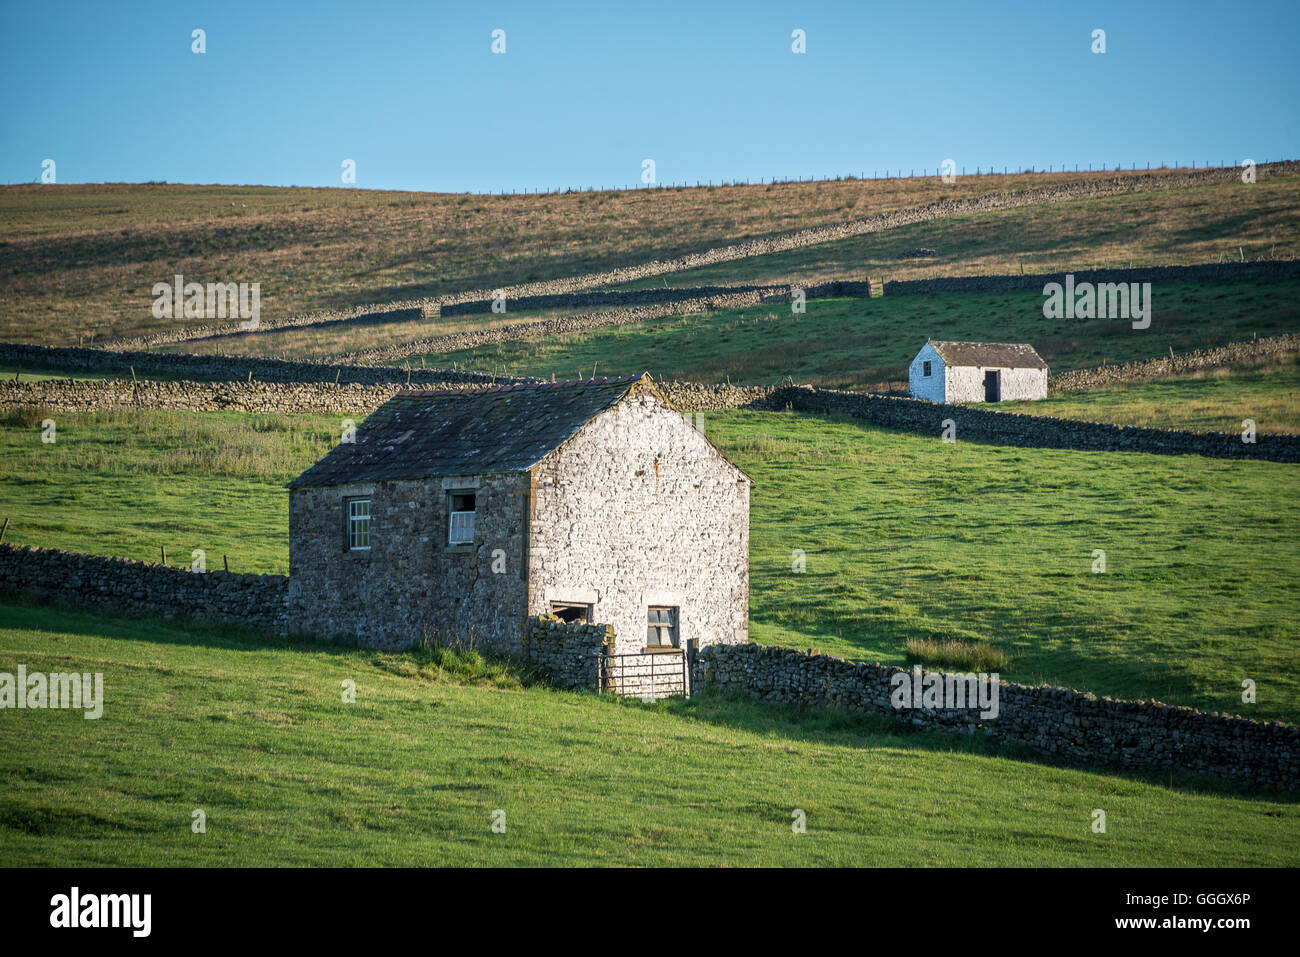 Teesdale, near Forest-in-Teesdale - Stock Image